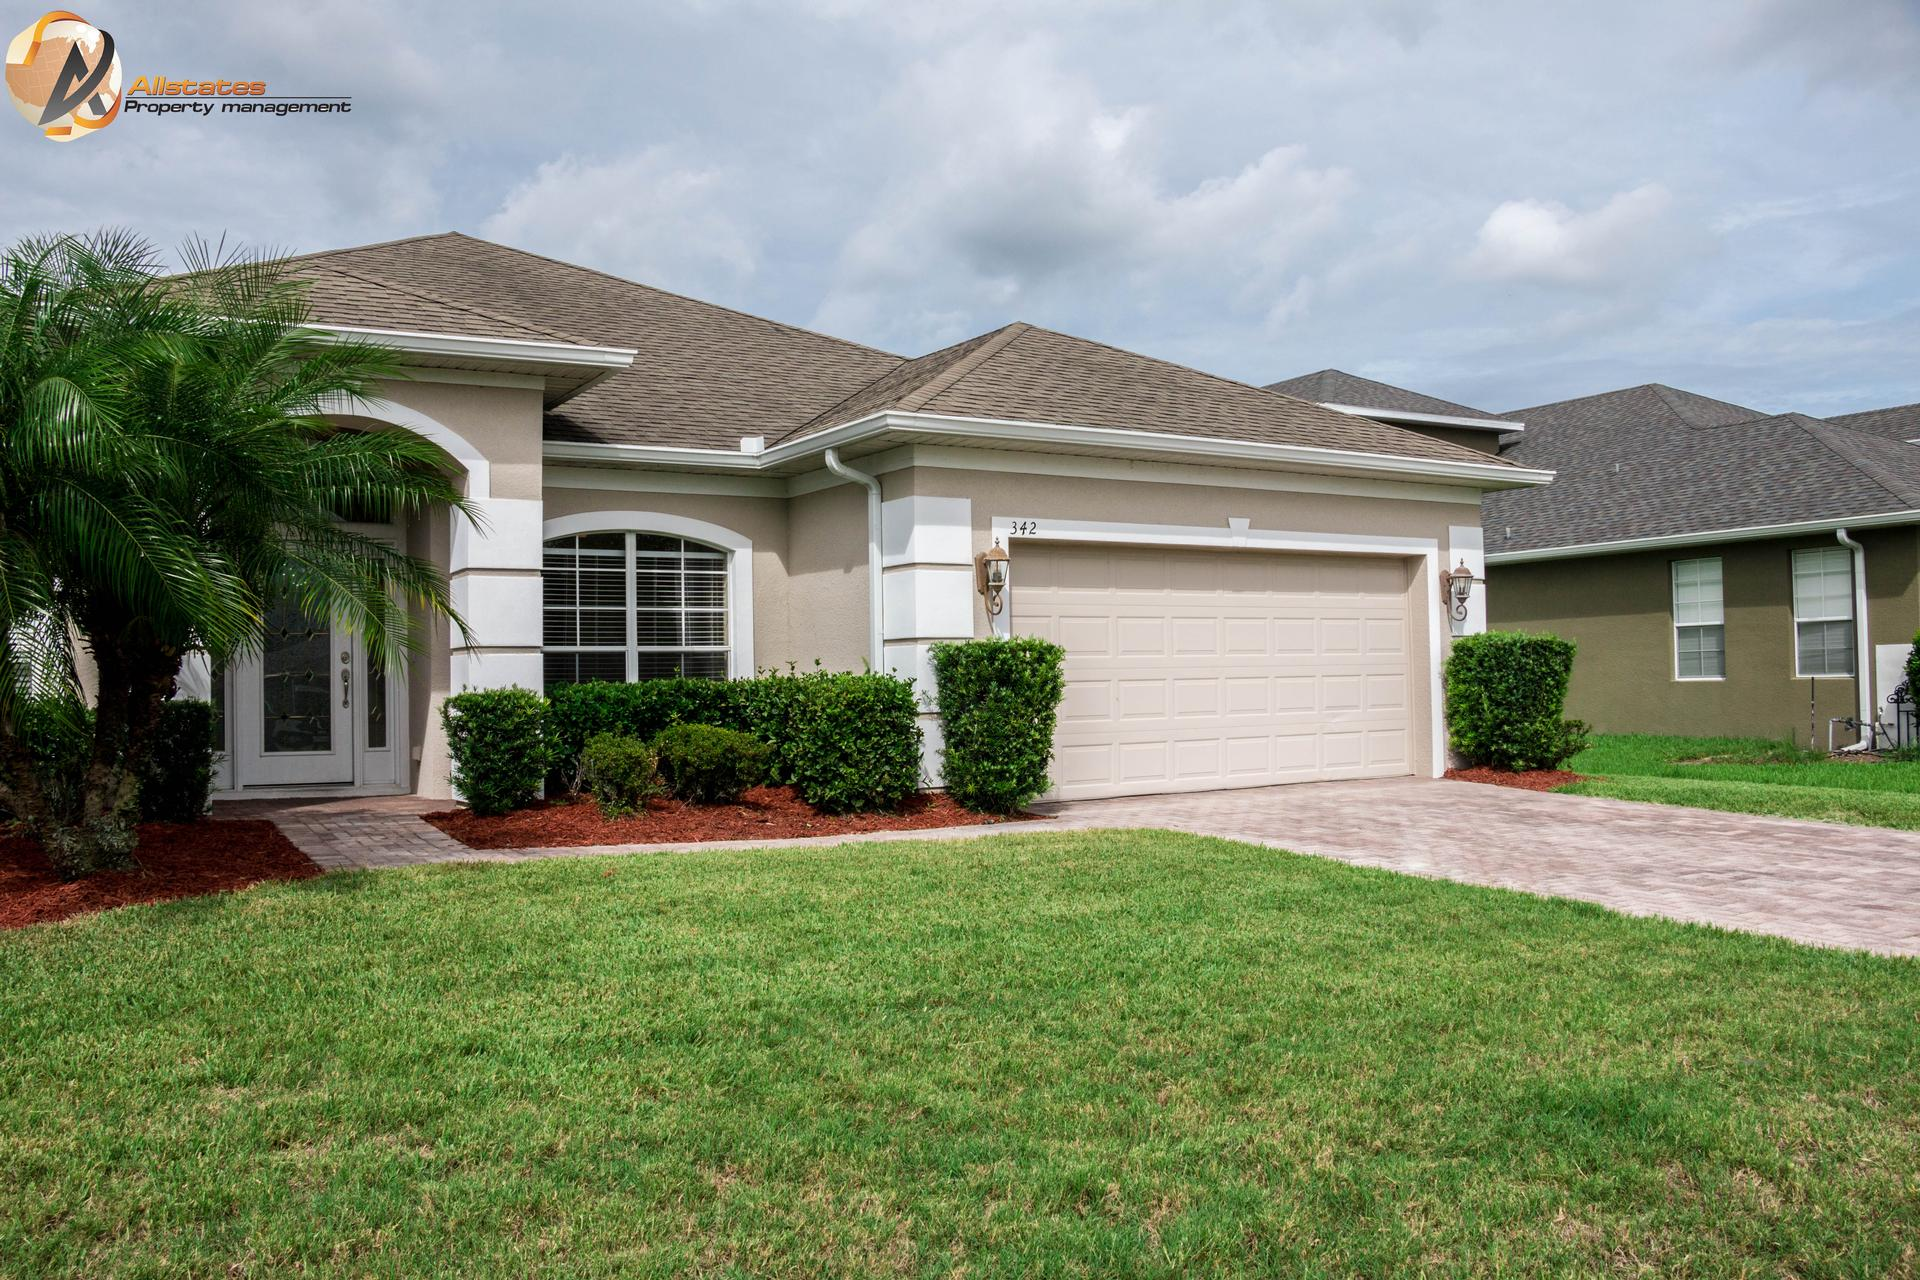 Photo of property: 342 Courtlea Park Dr. Winter Garden Fl 34787